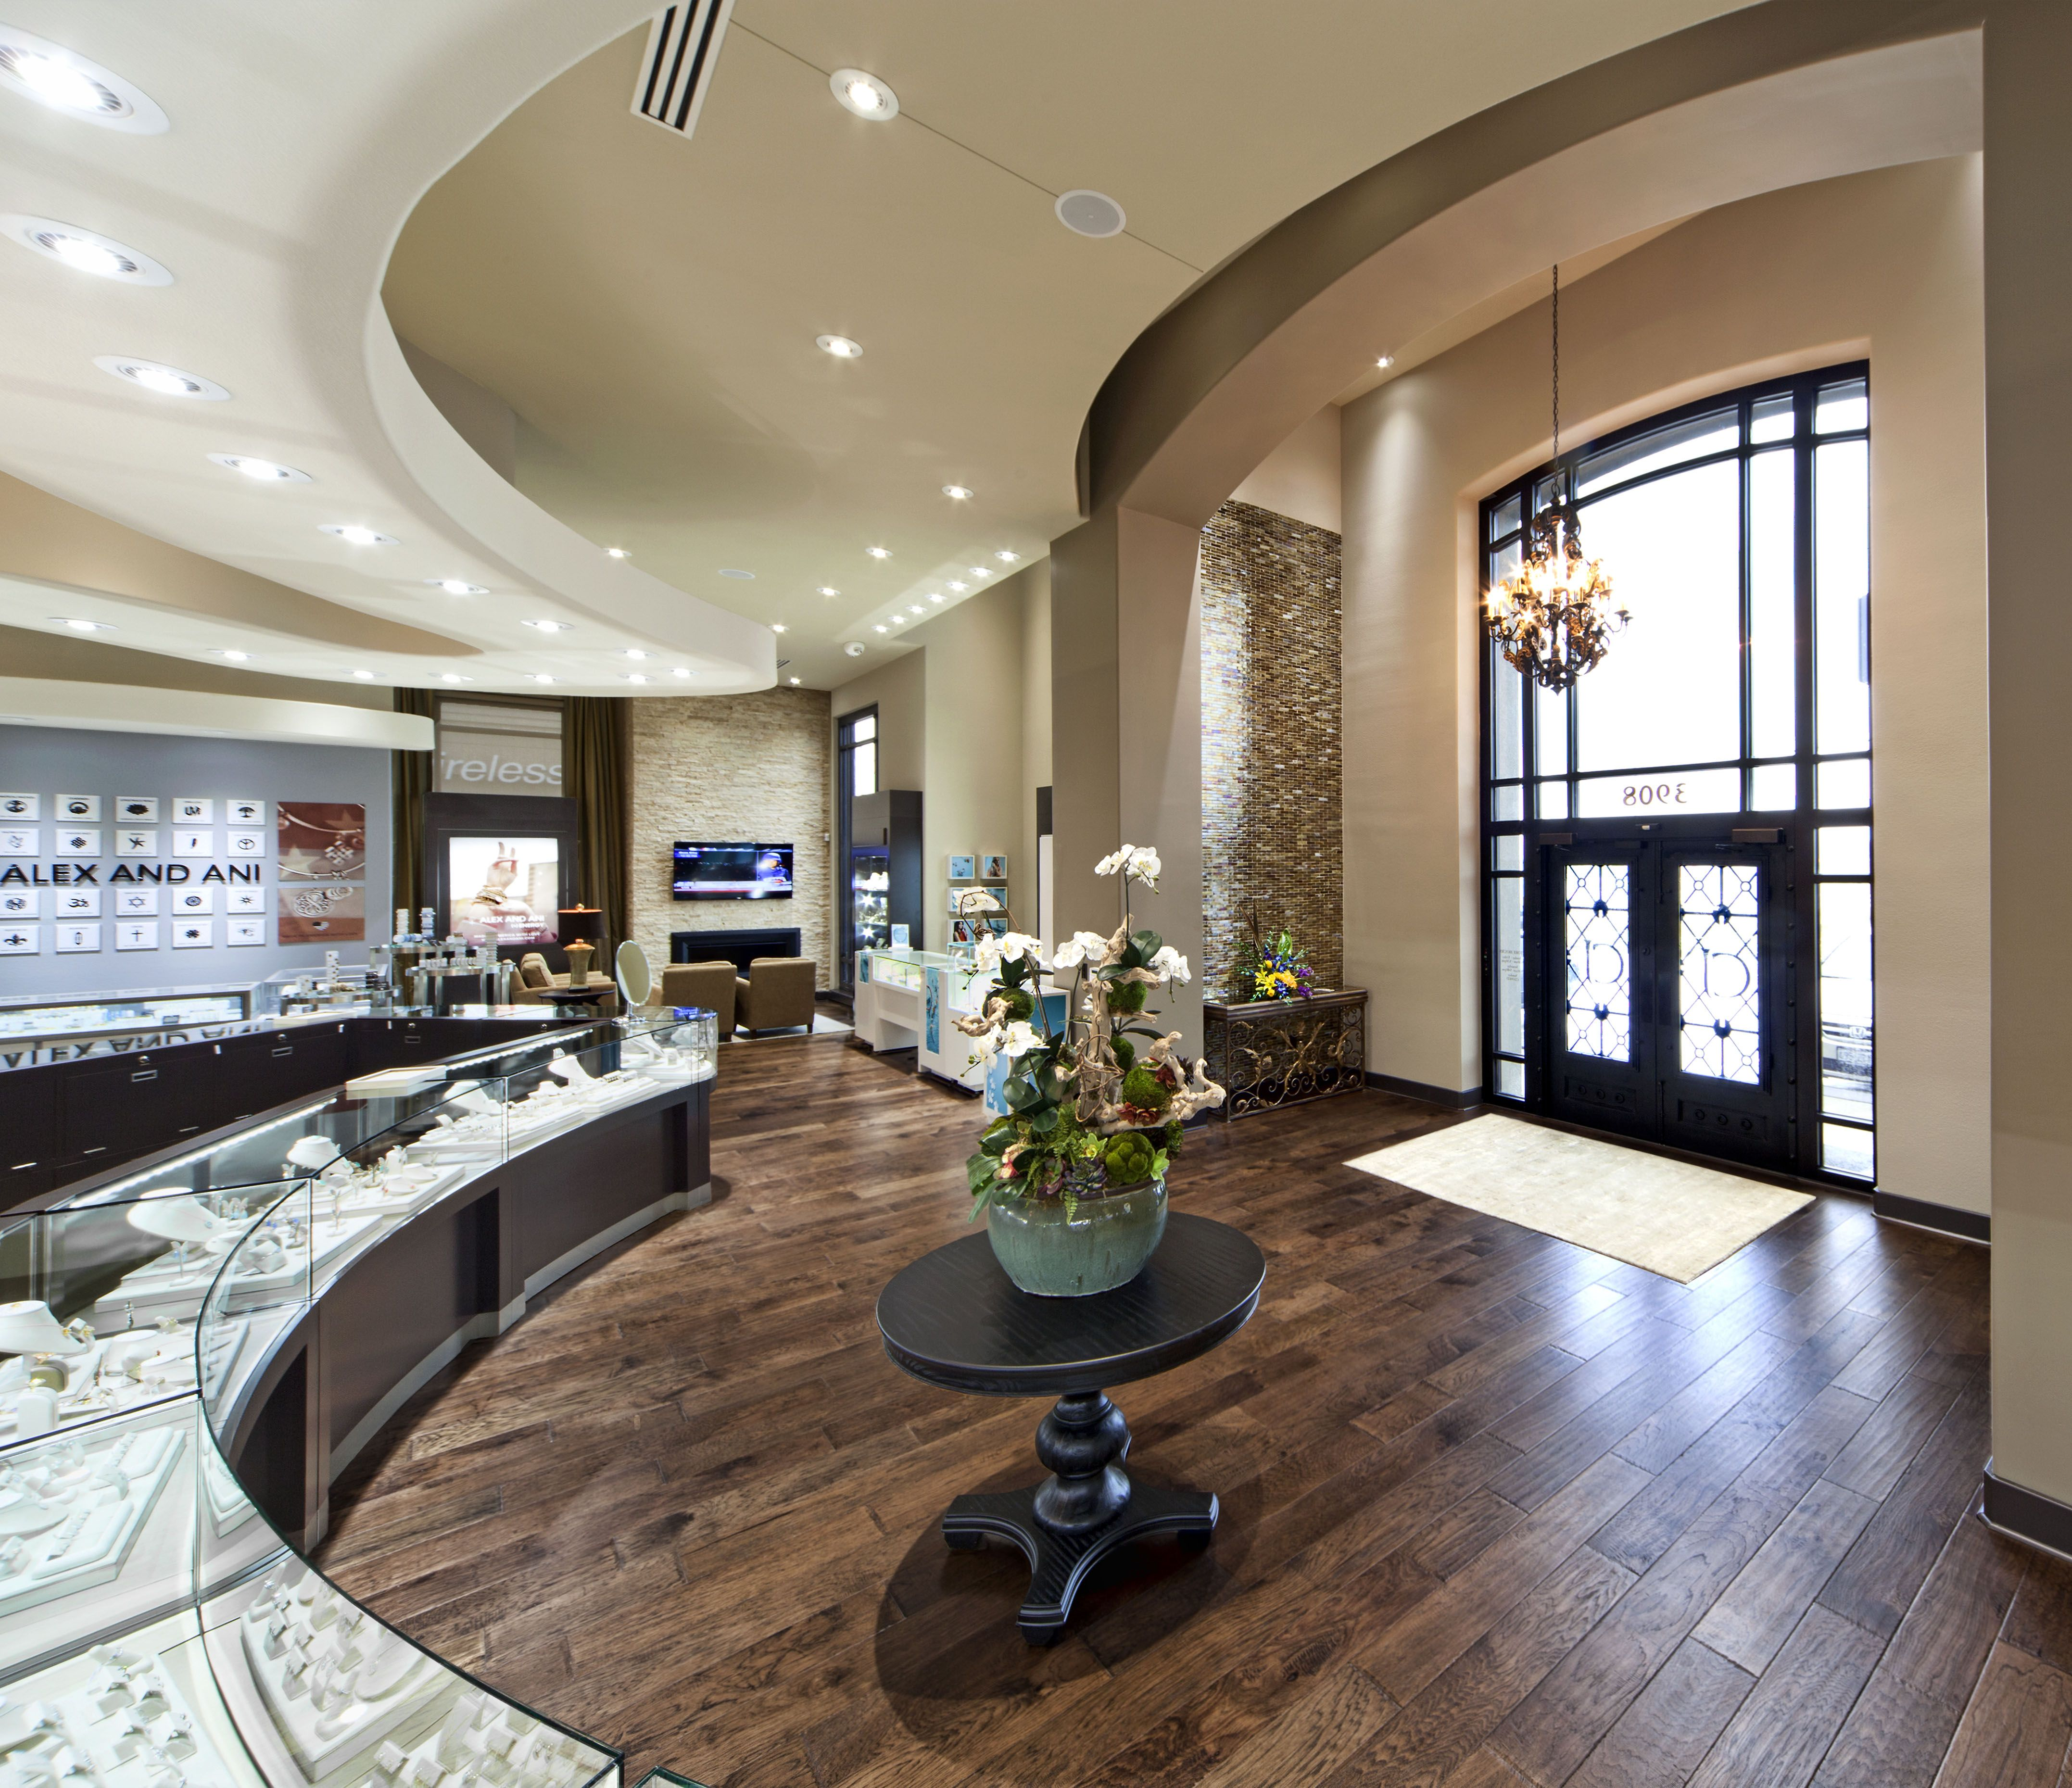 Crocker's Jewelers Manufacture & Design of Store Fixtures by Artco Group  Proudly Made in America.